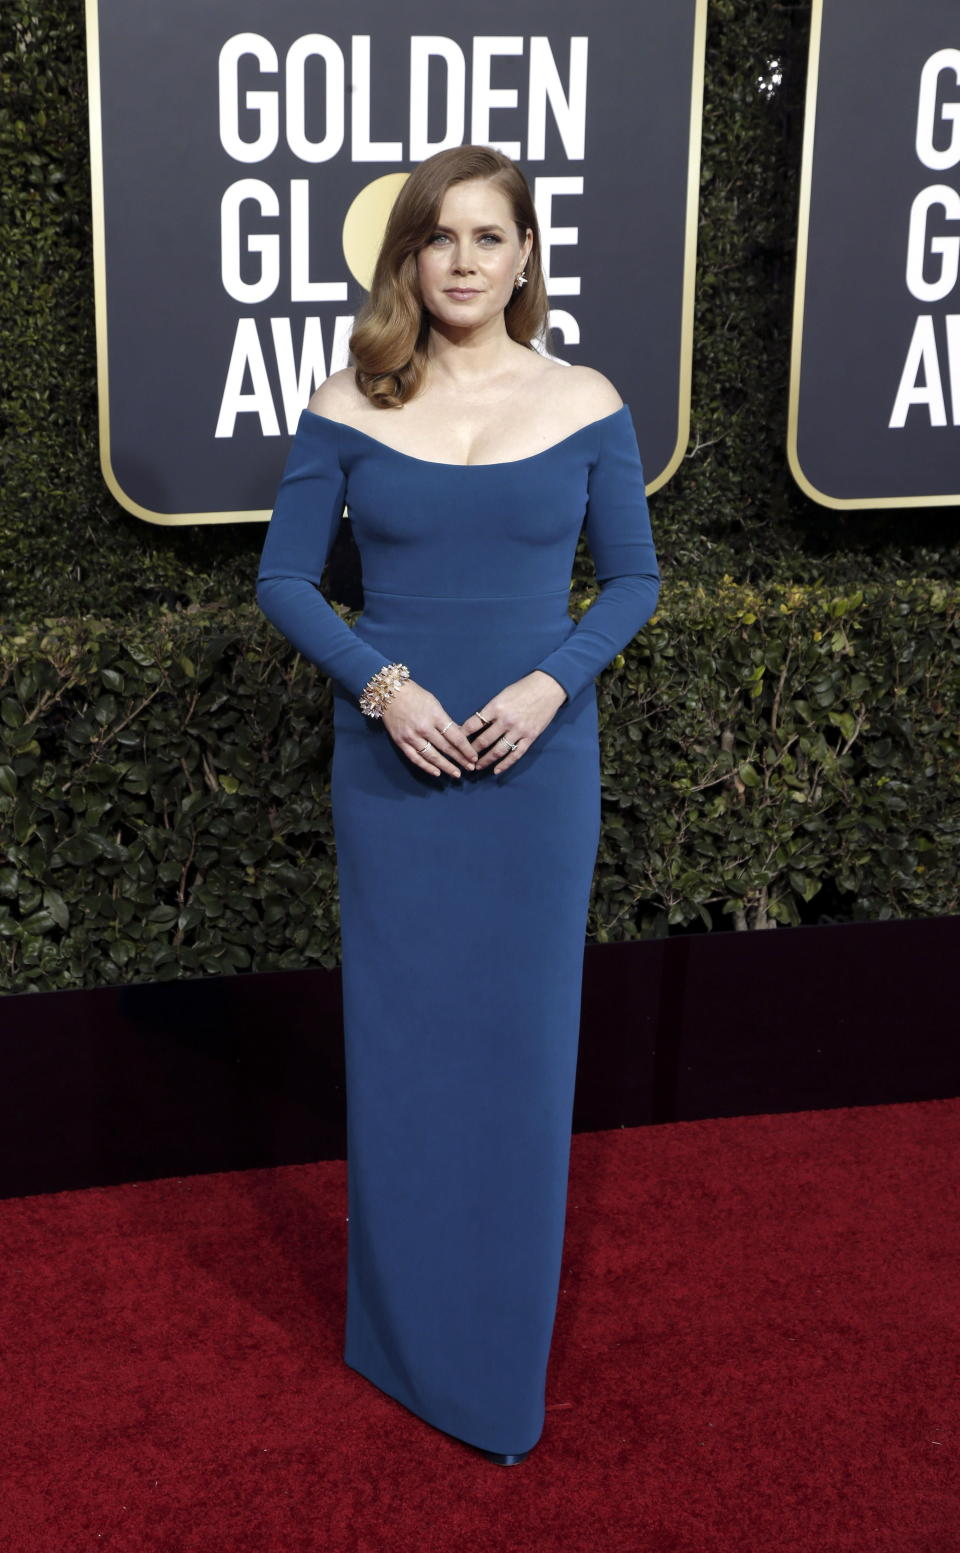 Amy Adams arrives for the 76th annual Golden Globe Awards ceremony at the Beverly Hilton Hotel, in Beverly Hills, California, USA, 06 January 2019. (Estados Unidos) EFE/EPA/MIKE NELSON *** Local Caption *** 52514391